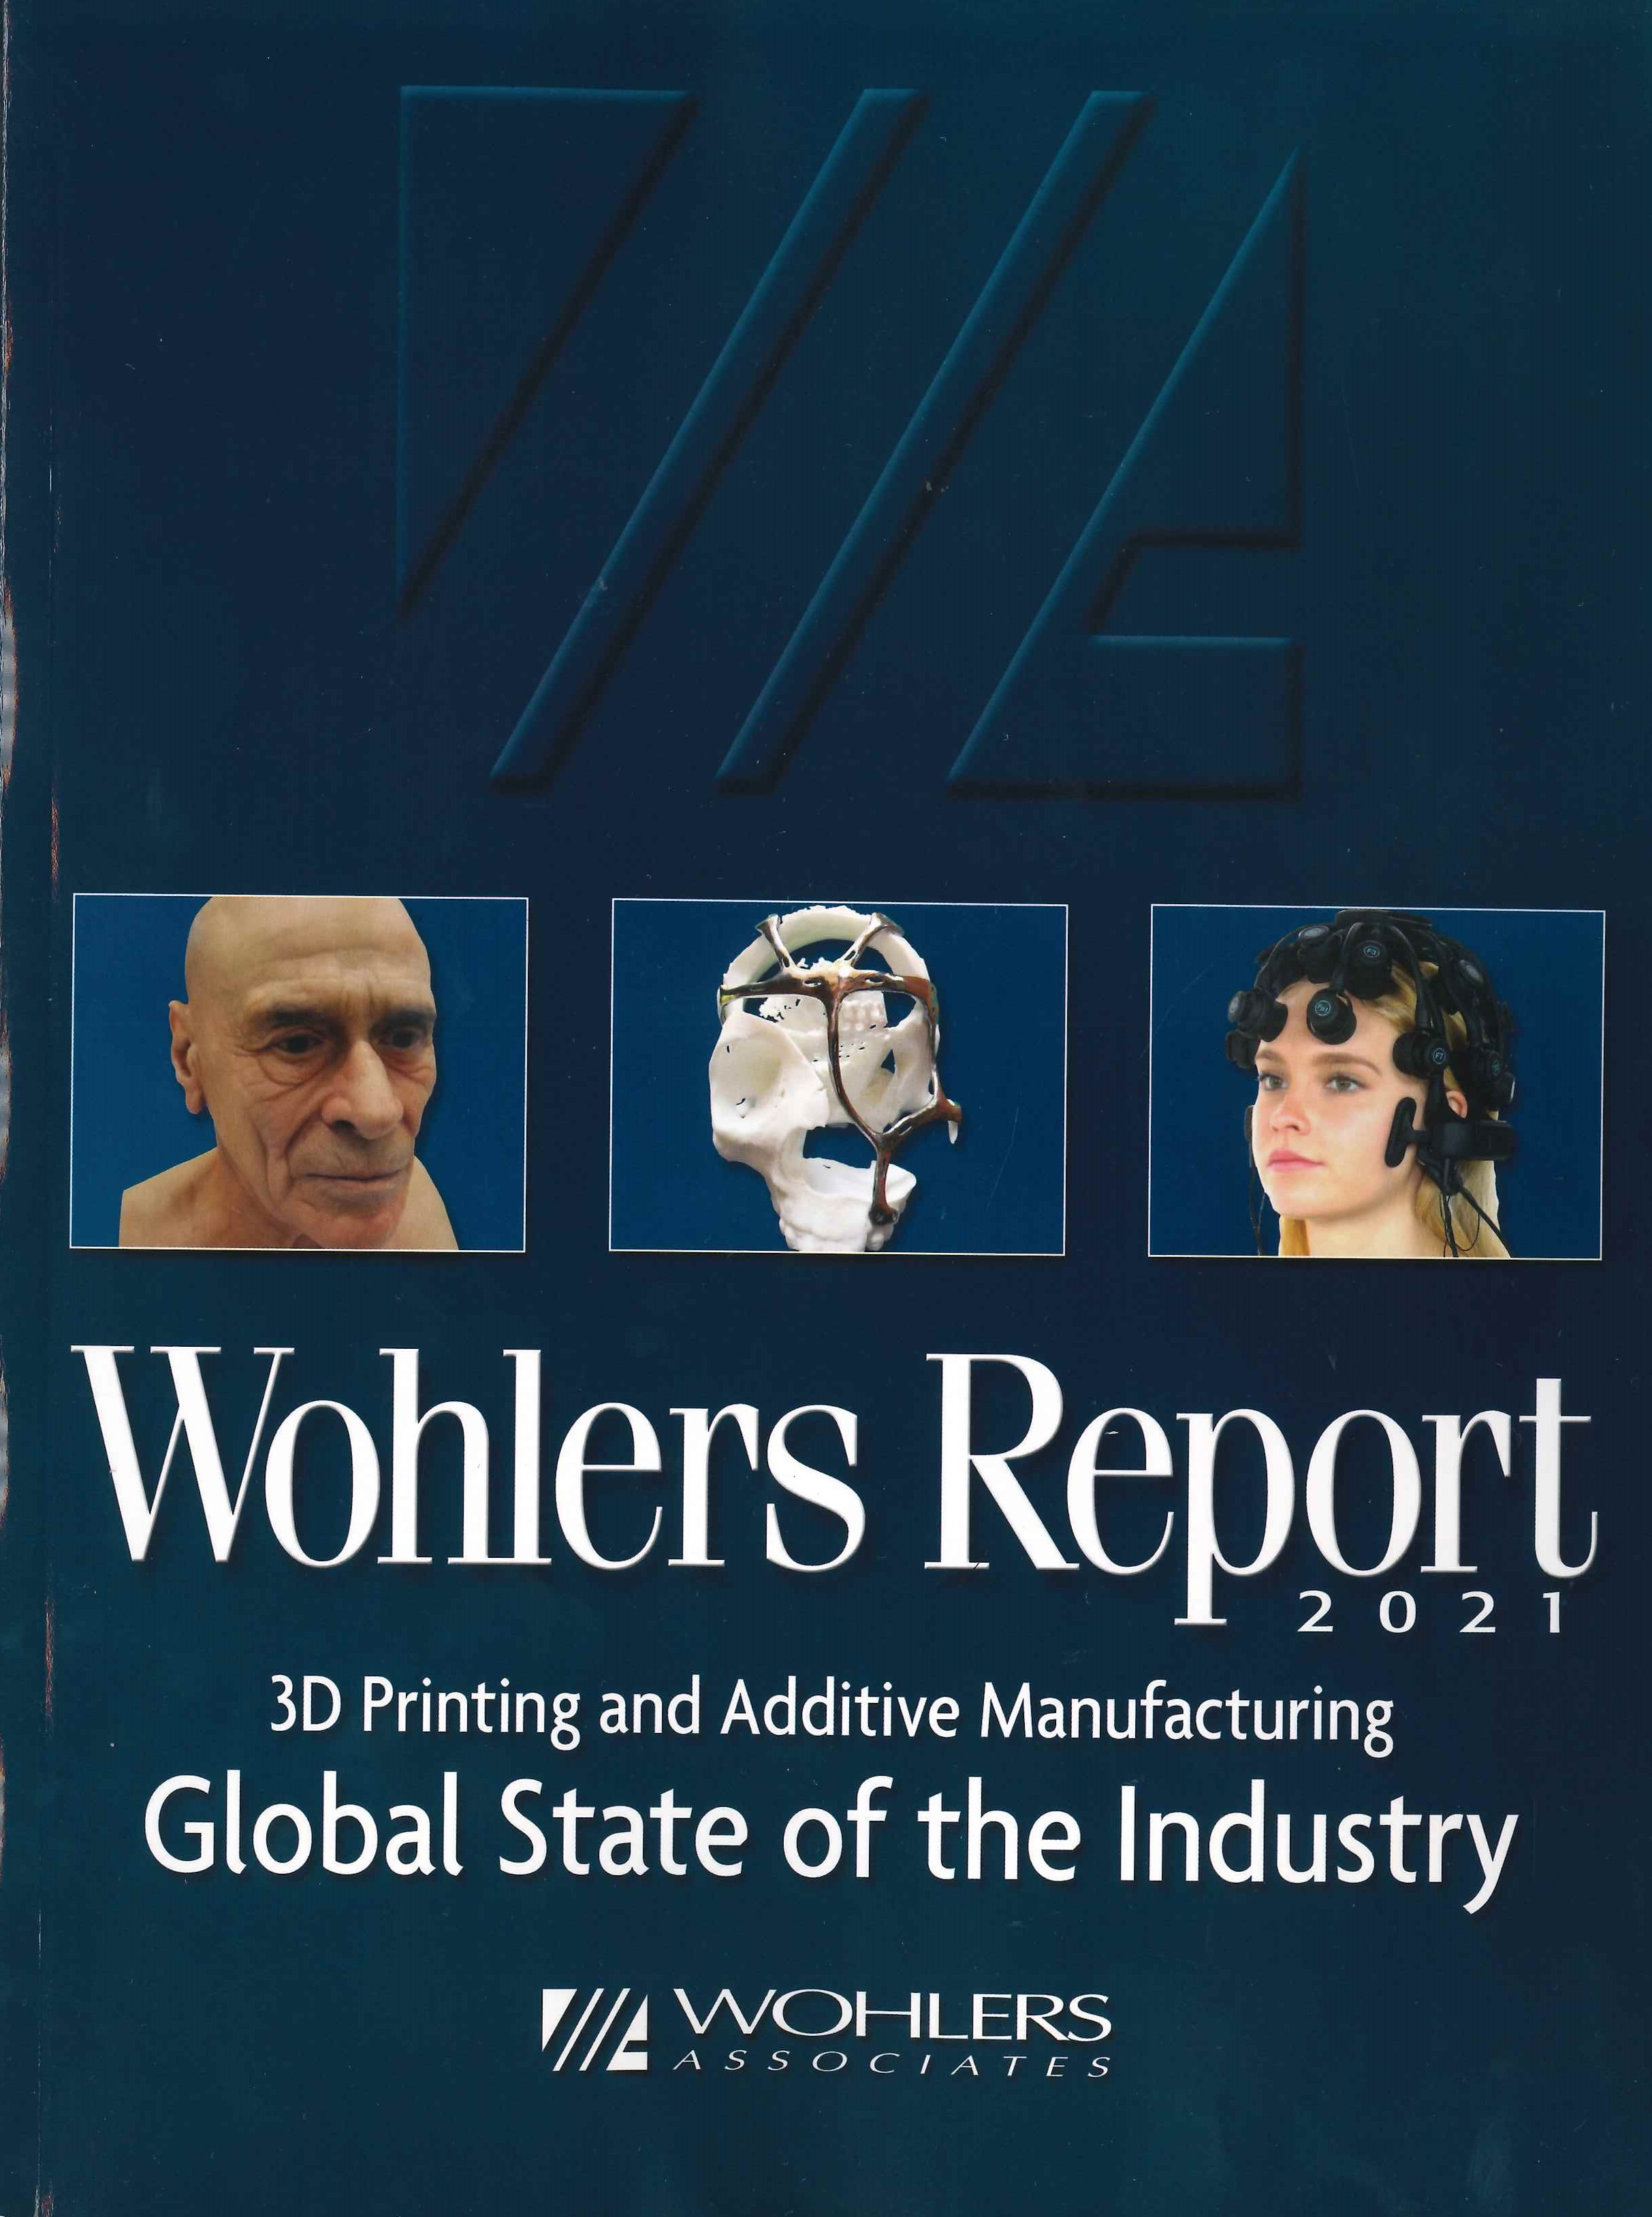 Wohlers report [e-book]:3D printing and additive manufacturing global state of the industry:annual worldwide progress report